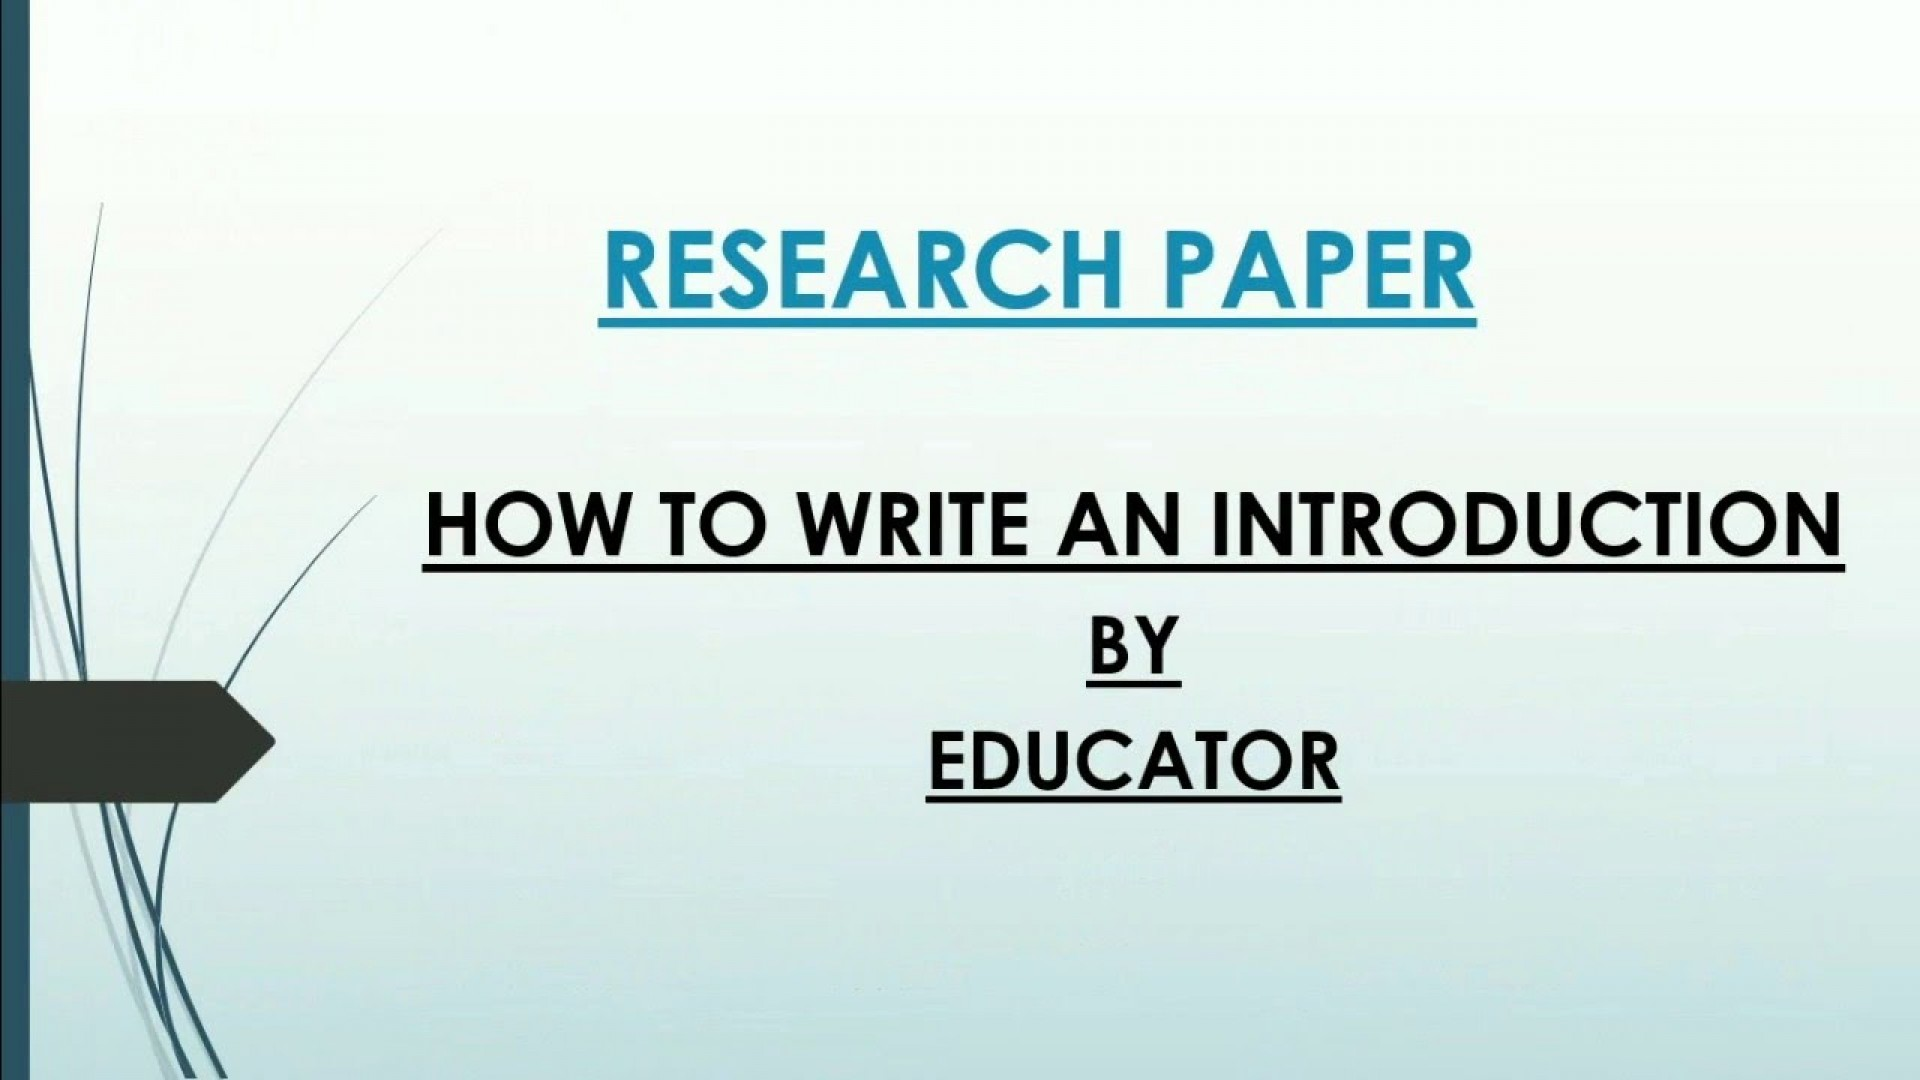 015 Writing An Introduction To Research Paper Top A The Scientific Middle School Paragraph For 1920